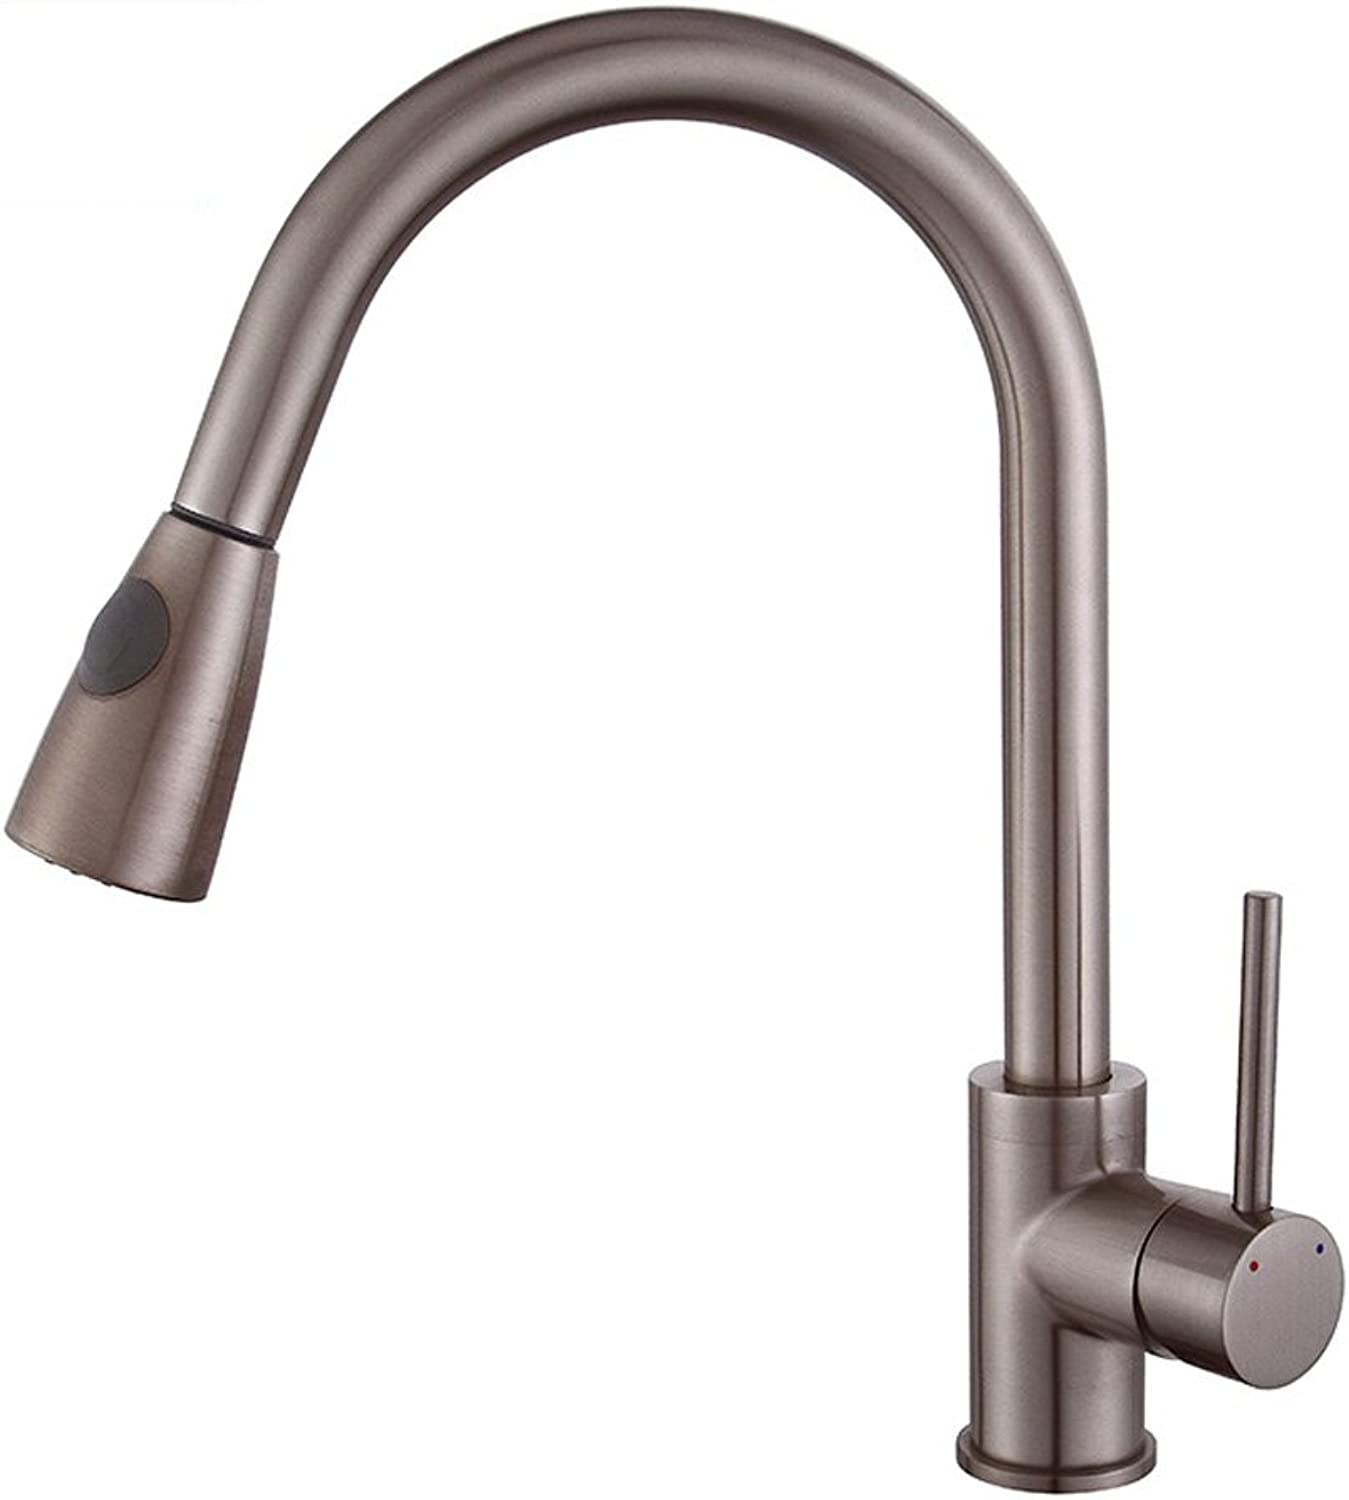 Neilyn Modern Full Copper Brush Finish Pull-Out Faucet Hot and Cold Kitchen Sink Bathroom Vanity Basin Mixer Taps Single-Hole Single-Handle Deck Mounting Faucet